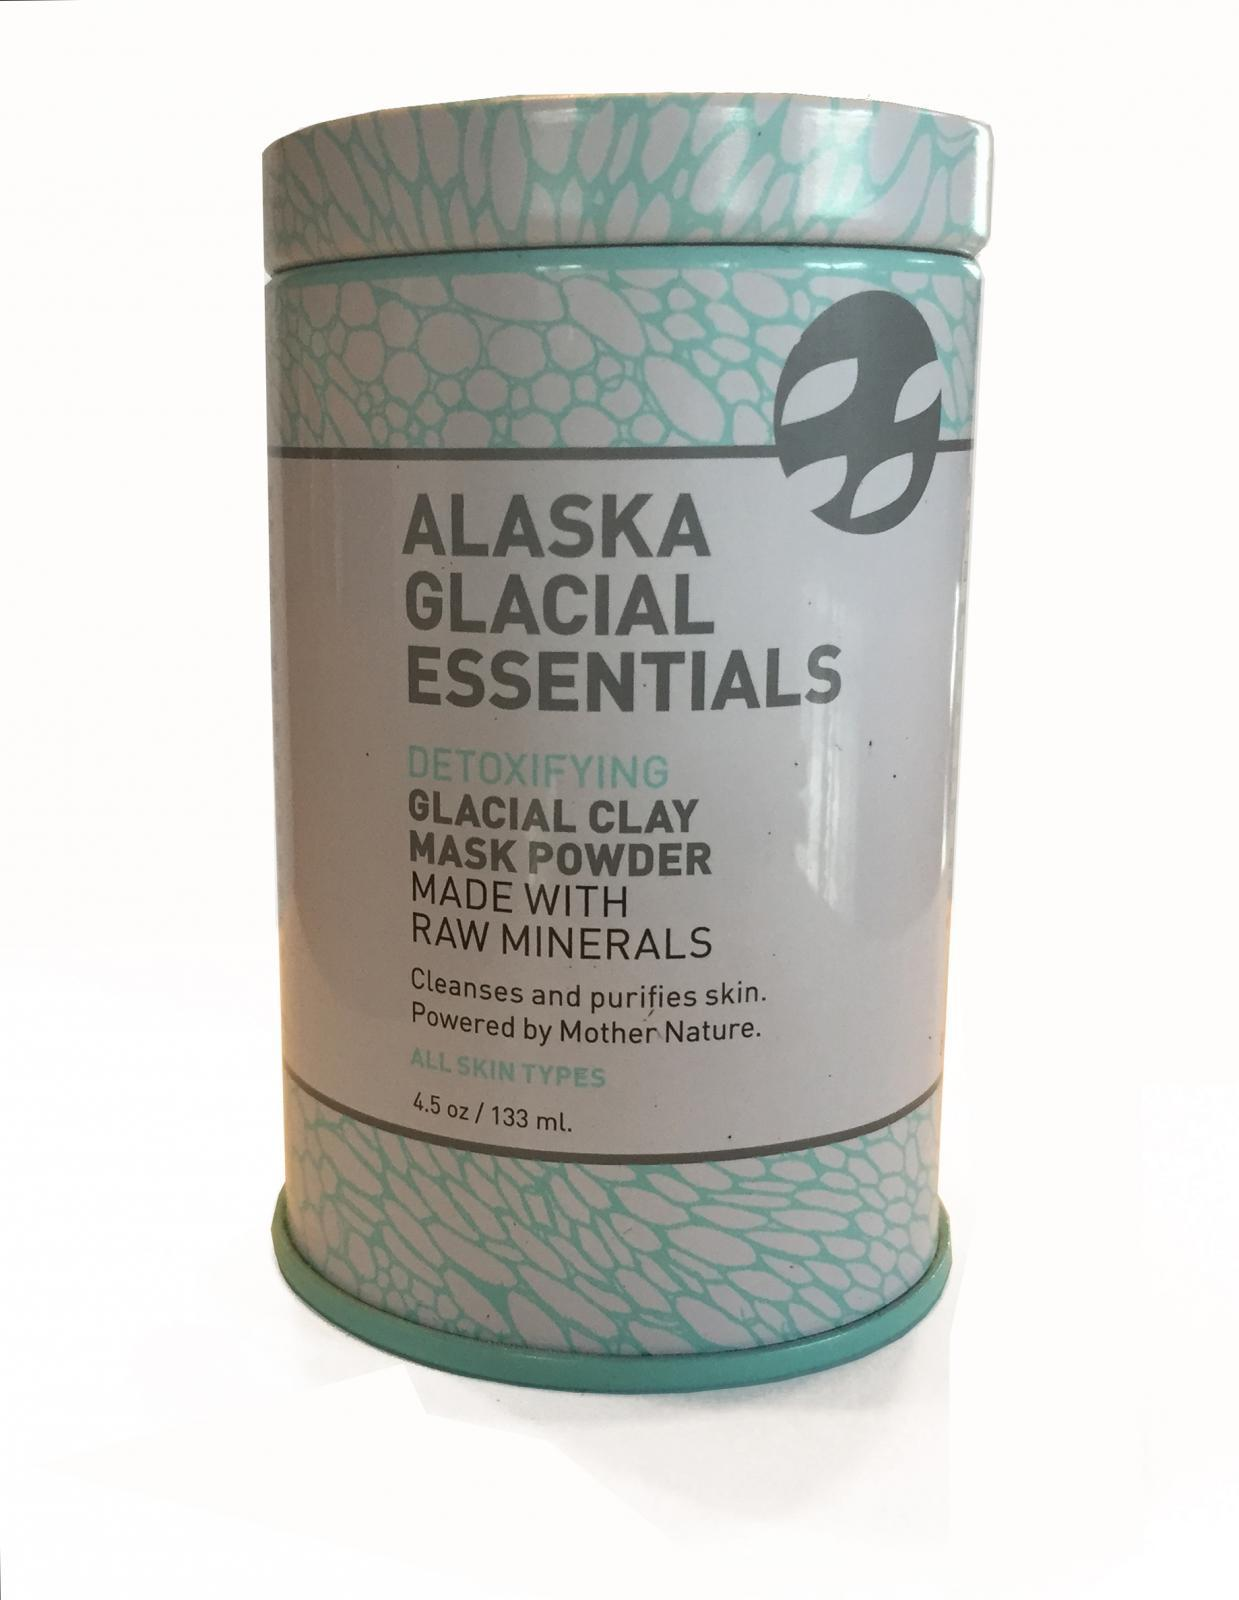 Alaska Glacial Essentials DETOXIFYING GLACIAL CLAY MASK POWDER